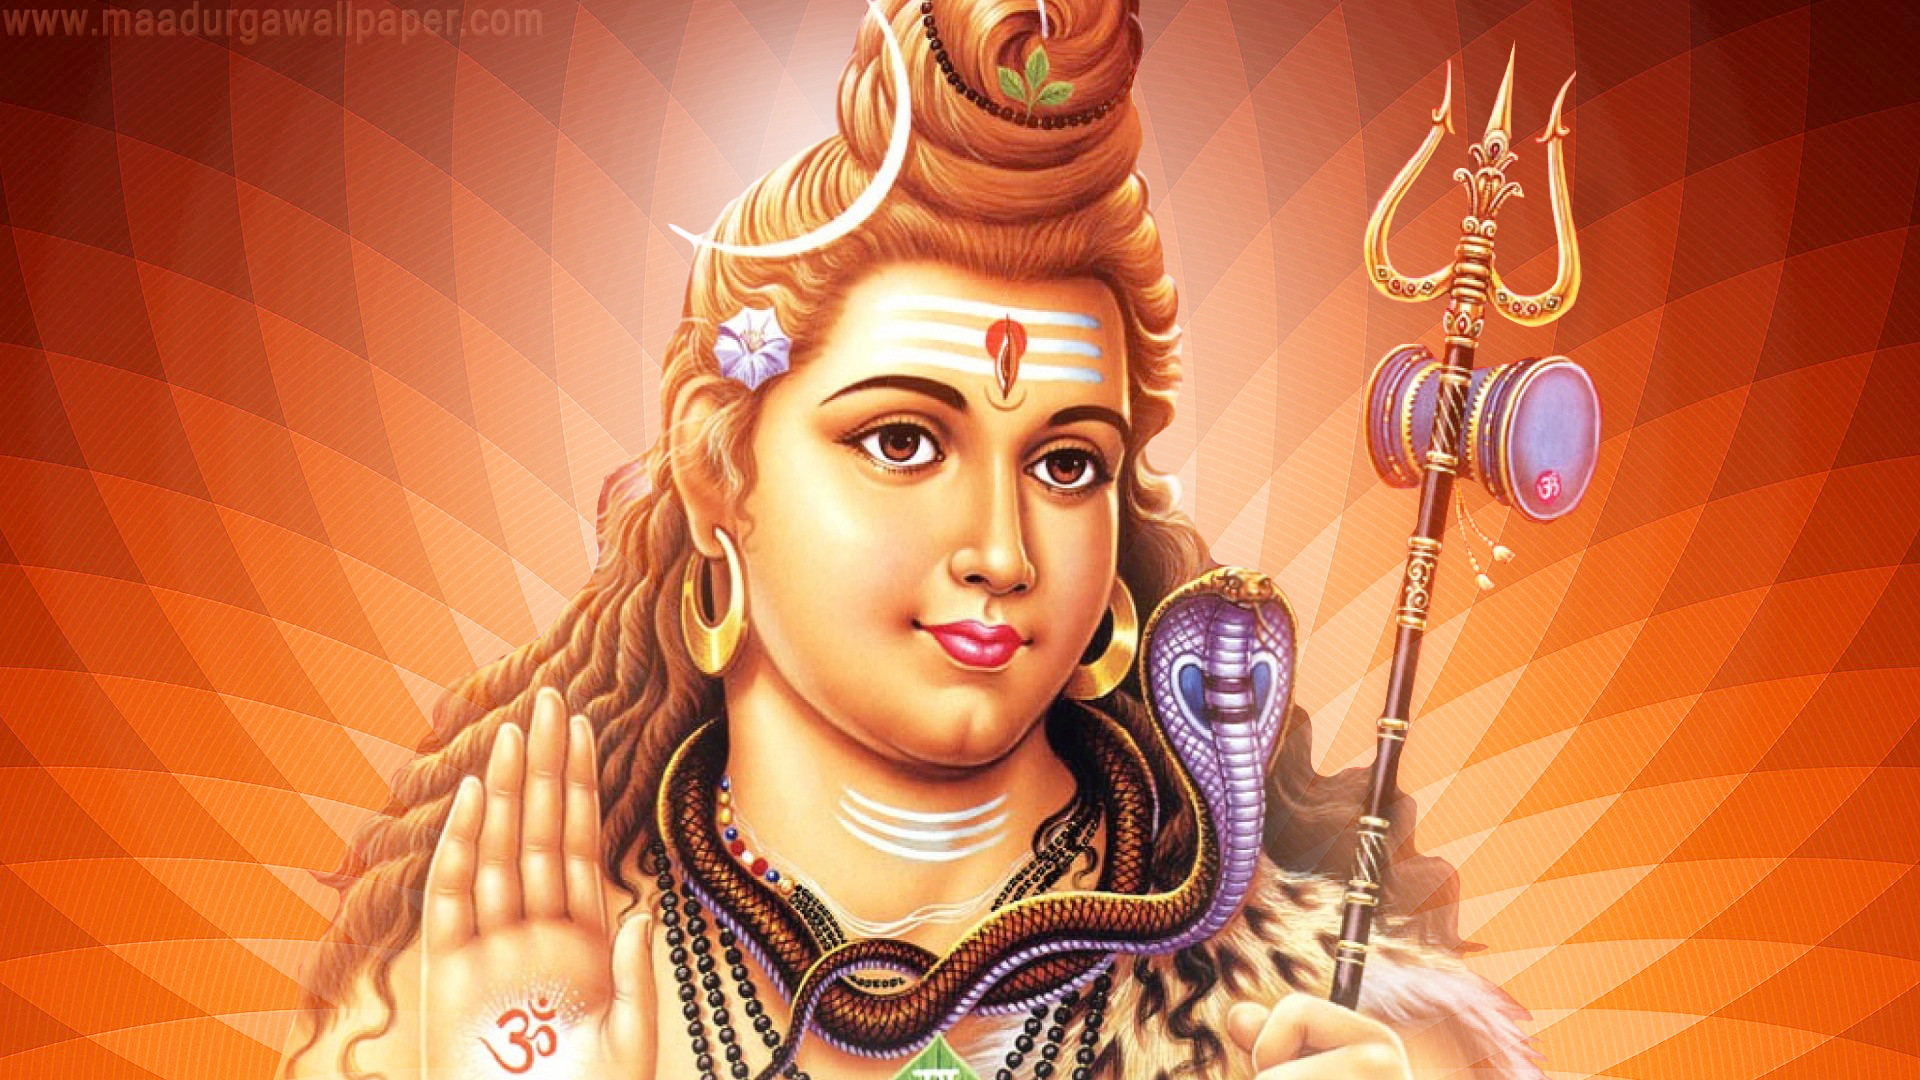 Shiv Shankar Hd Wallpaper Lord Shiva Wallpapers High Resolution 73 Images